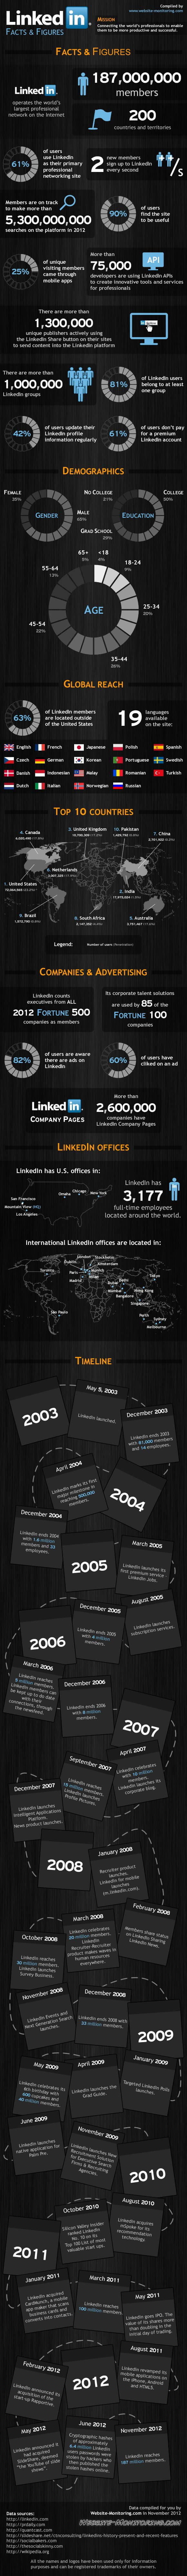 LinkedIn – Facts and Figures [INFOGRAPHIC]